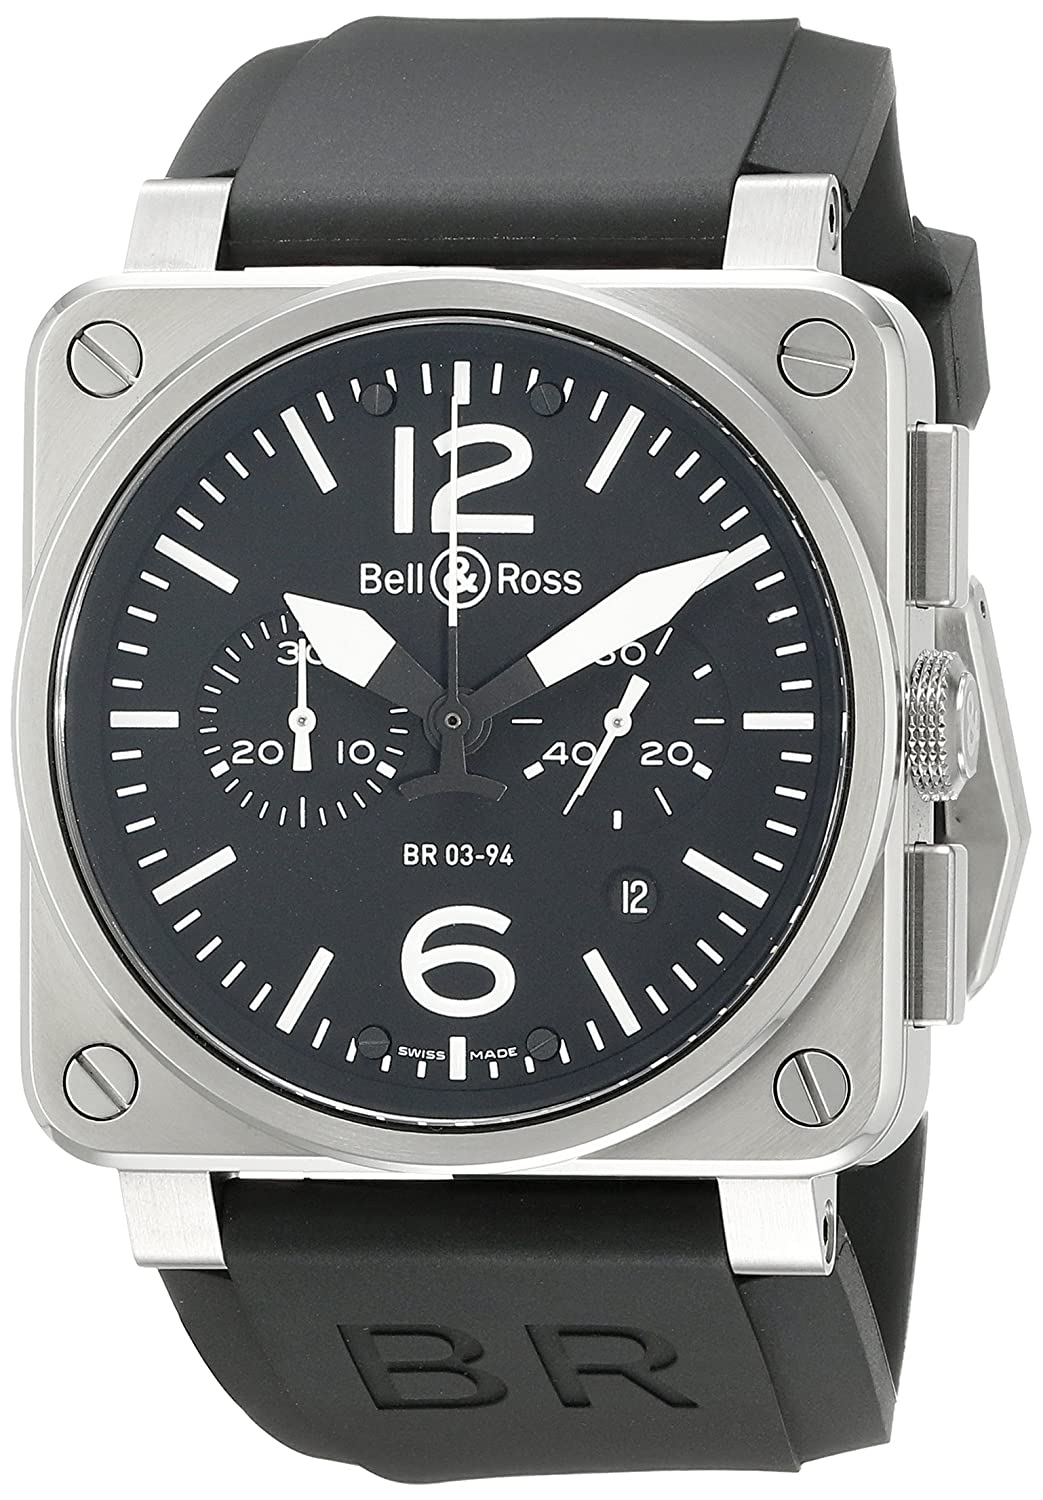 Communication on this topic: Bell Ross Men's BR03-94 Watch, bell-ross-mens-br03-94-watch/